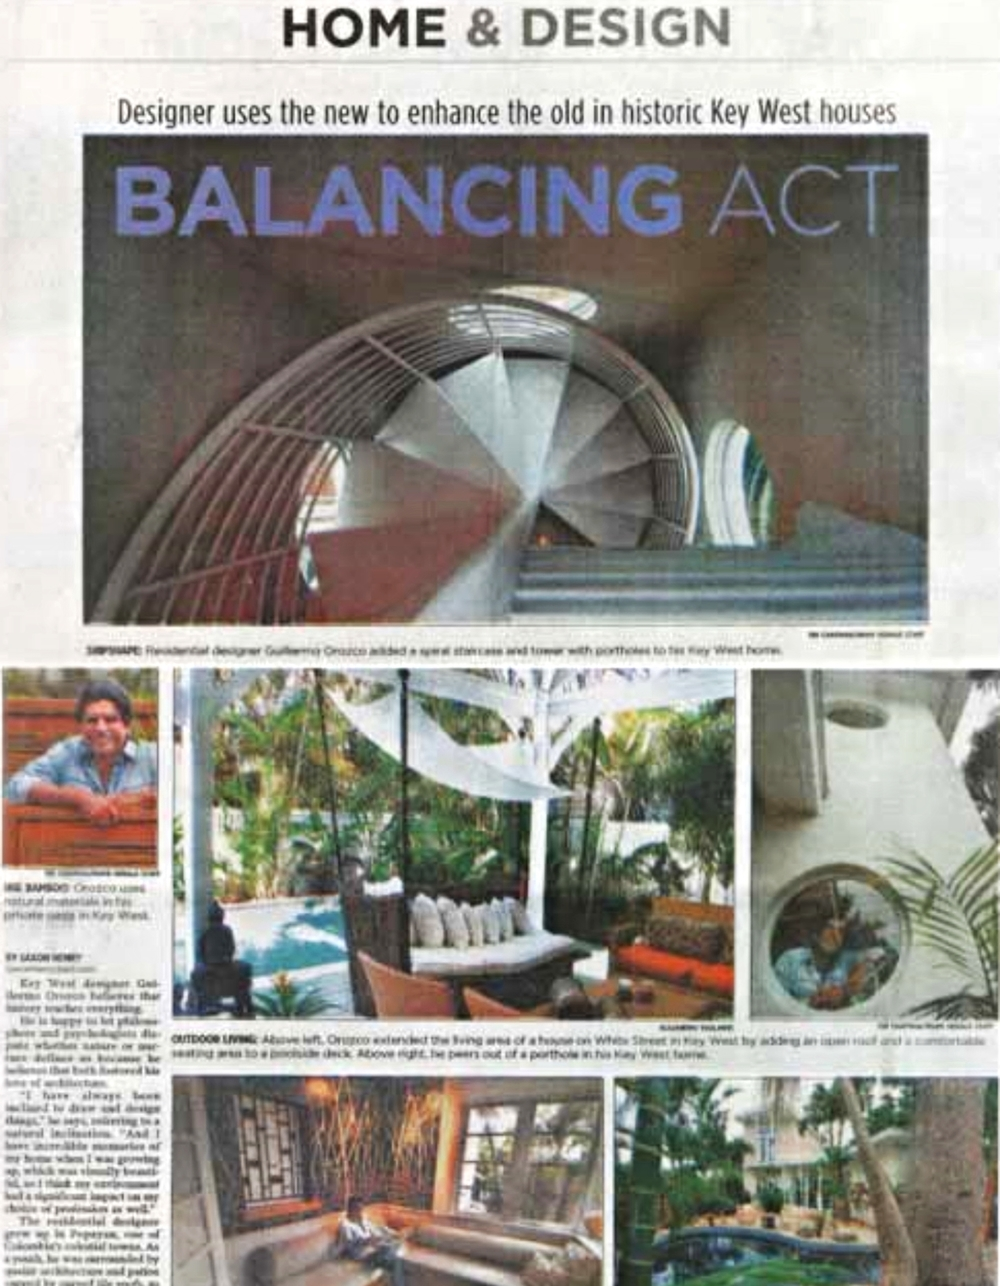 Balancing Act Home & Design